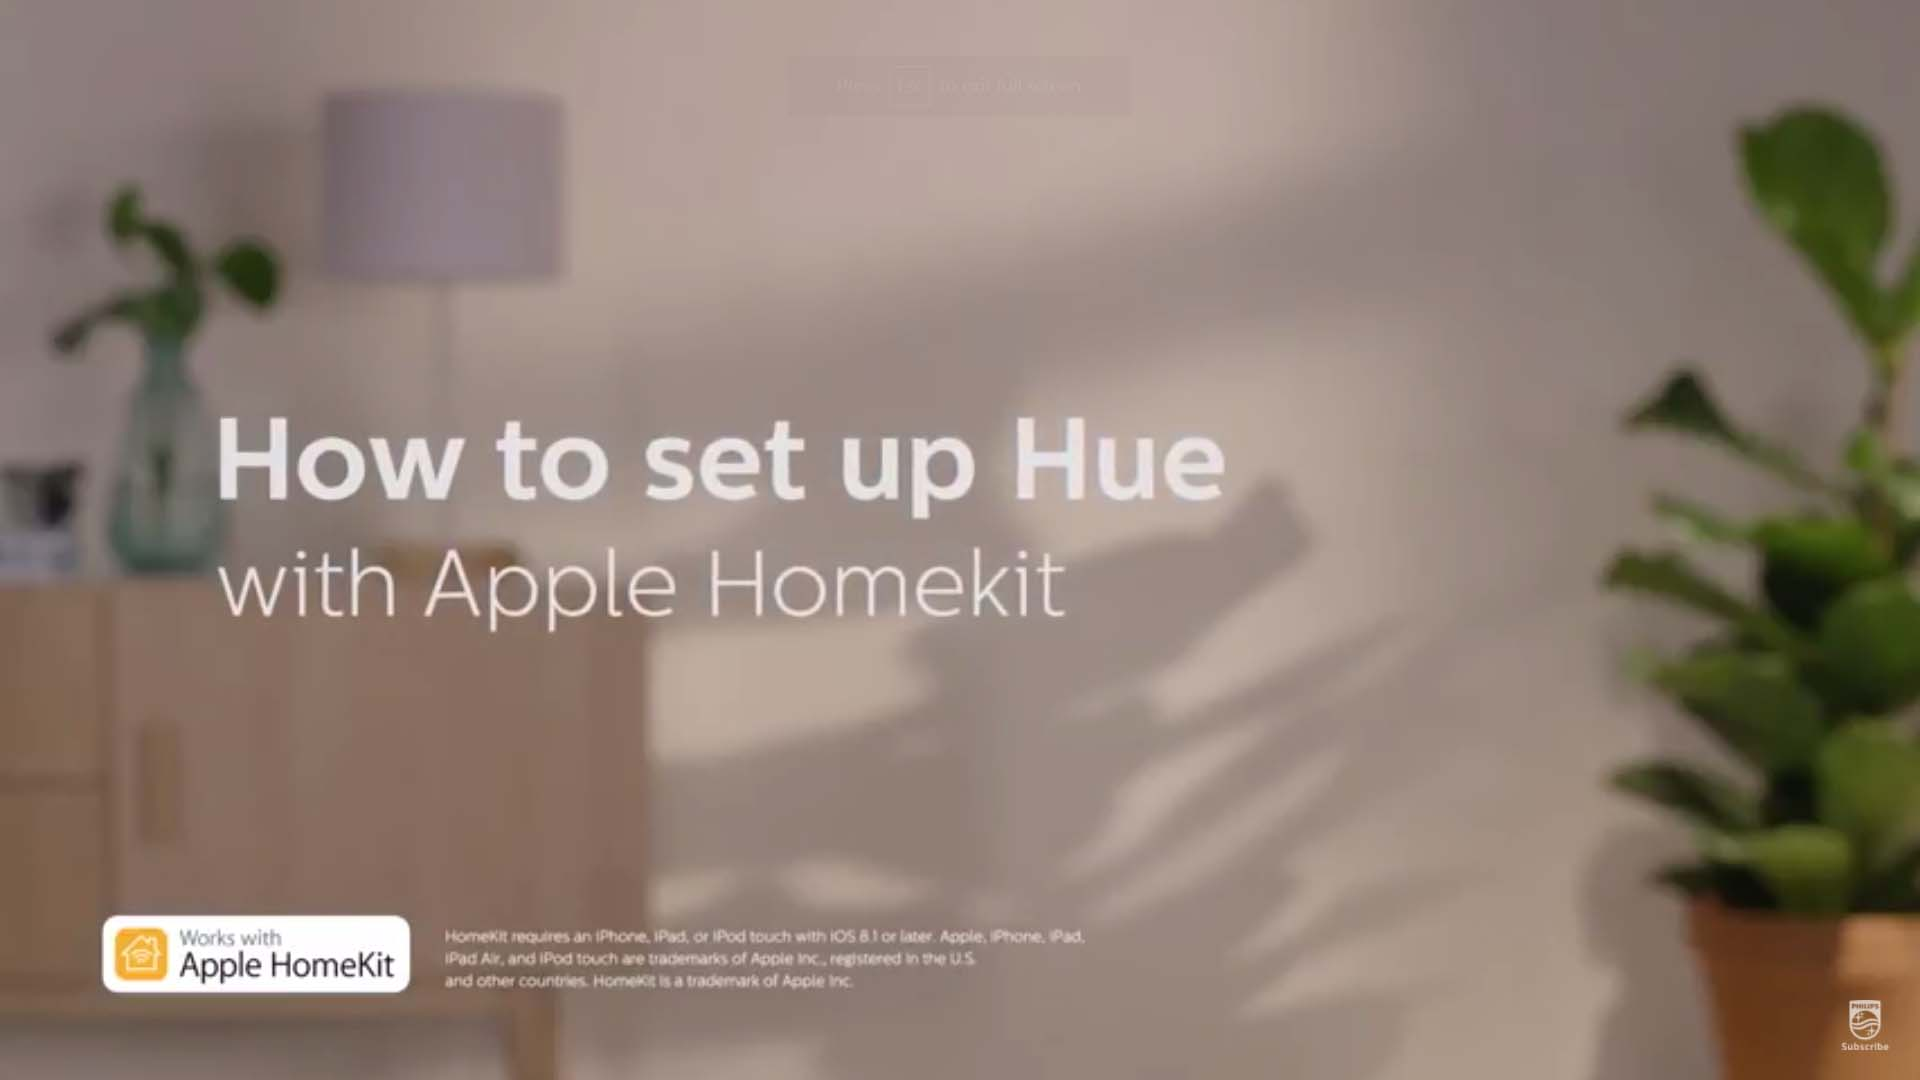 Philips Hue how to set up Hue with Apple Homekit